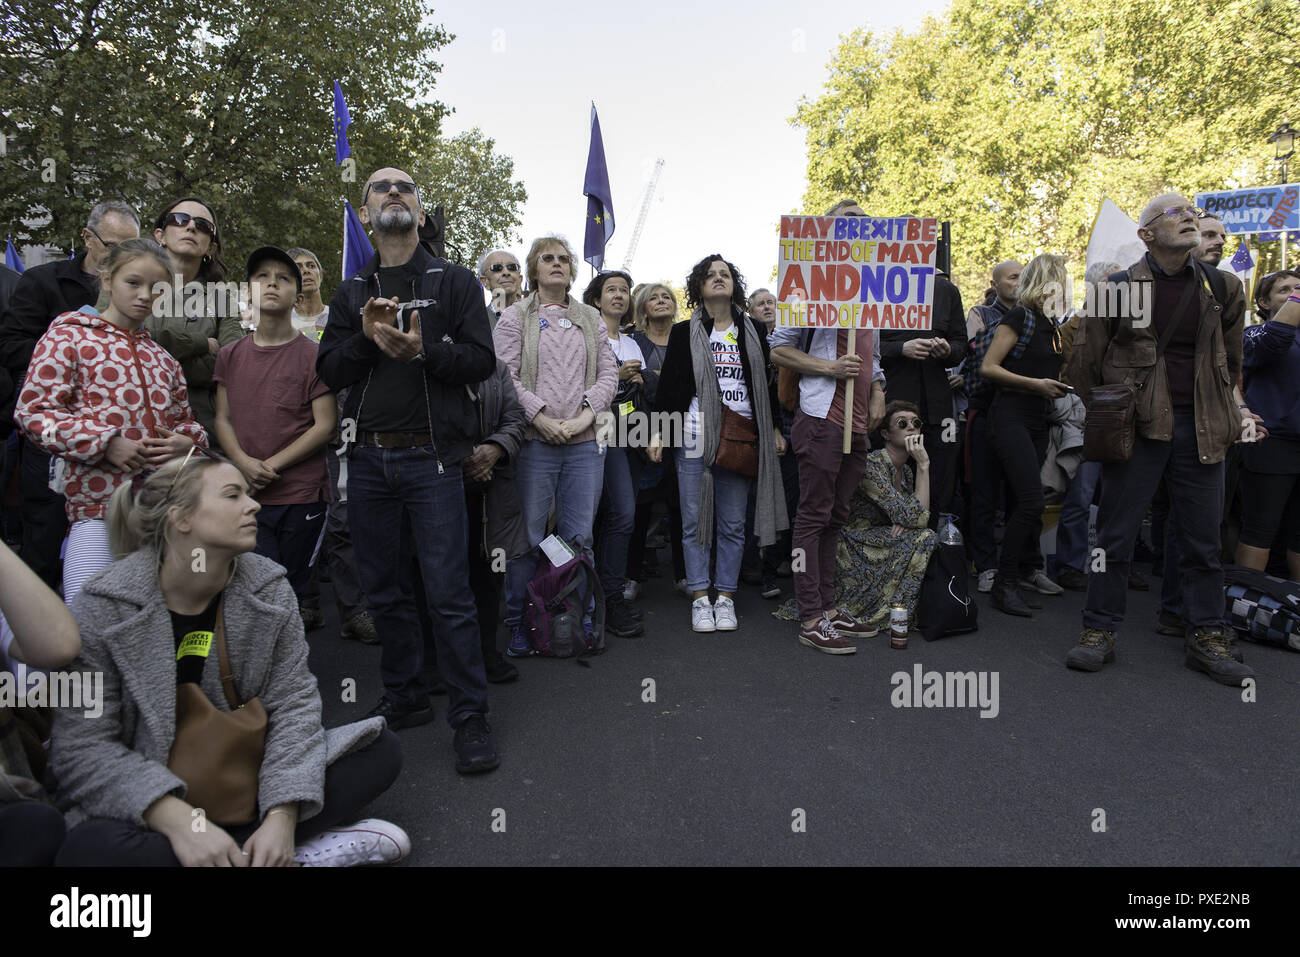 London, Greater London, UK. 20th Oct, 2018. An anti-Brexit protester is seen holding a placard during the march.A huge demonstration organised by the People's vote campaign gathered at Park Lane to march to the Parliament Square to protest against the Tory government's Brexit negotiations and demanding for a second vote on the final Brexit deal. Credit: Andres Pantoja/SOPA Images/ZUMA Wire/Alamy Live News - Stock Image